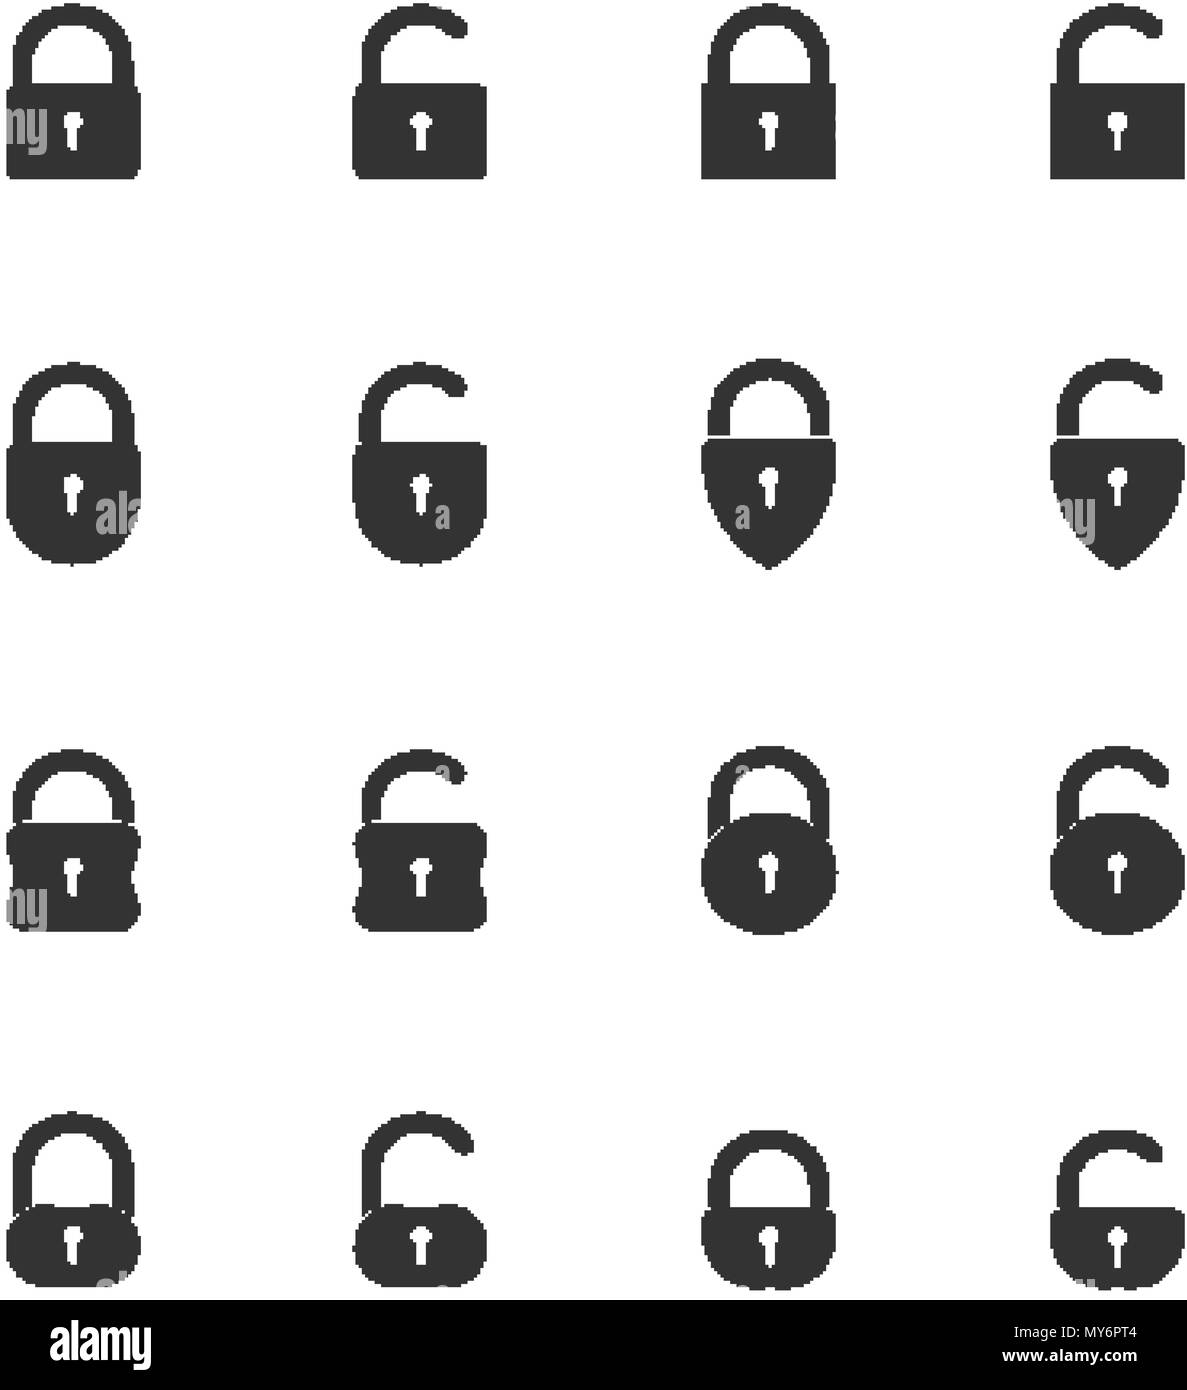 Set of black closed and opened lock icons - Stock Image